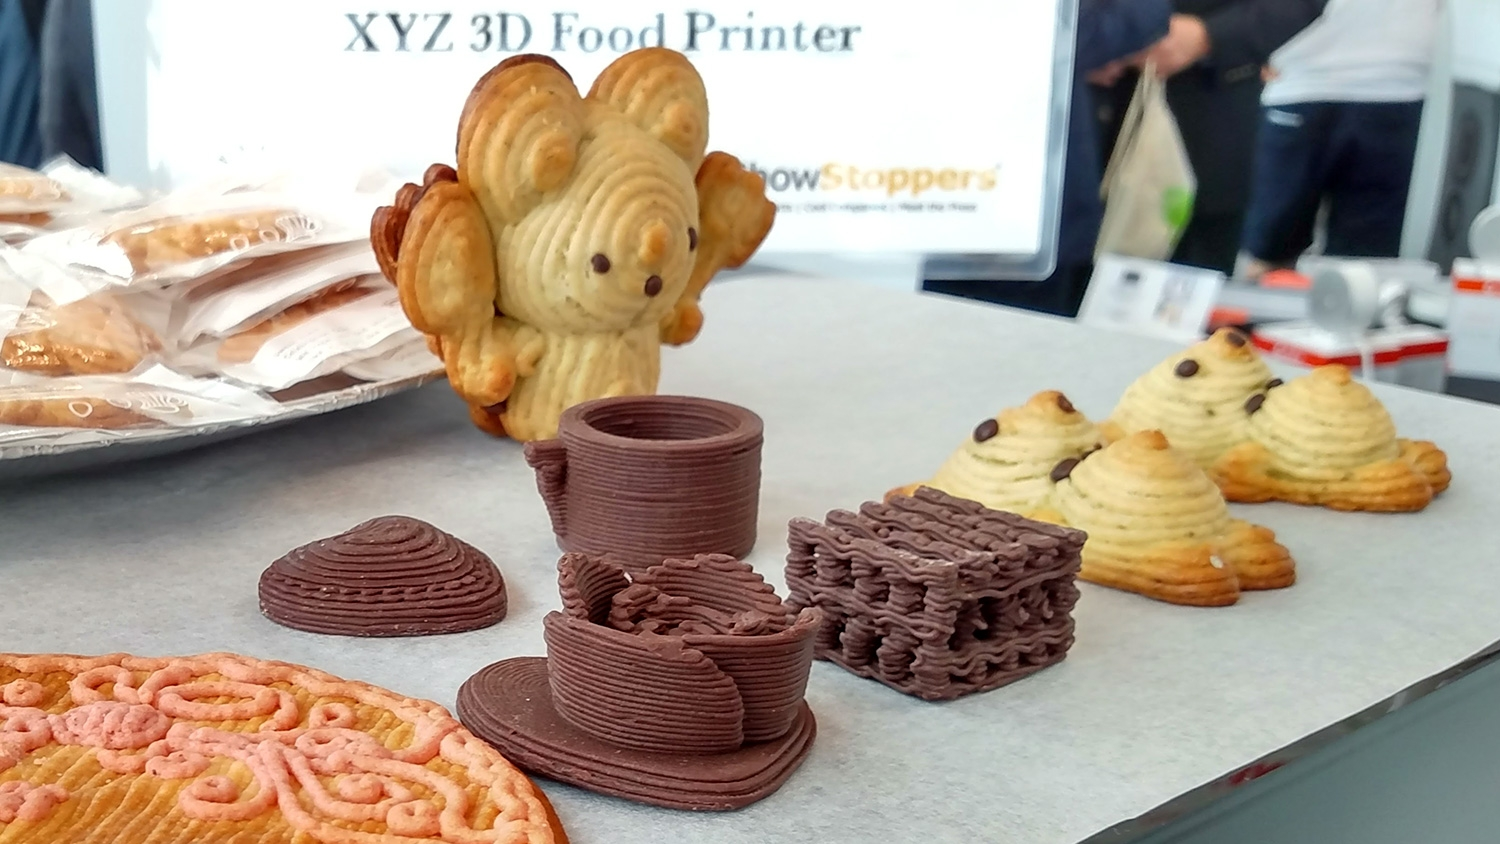 This 3d food printer prints chocolate cookie dough or for 3d cuisine boe